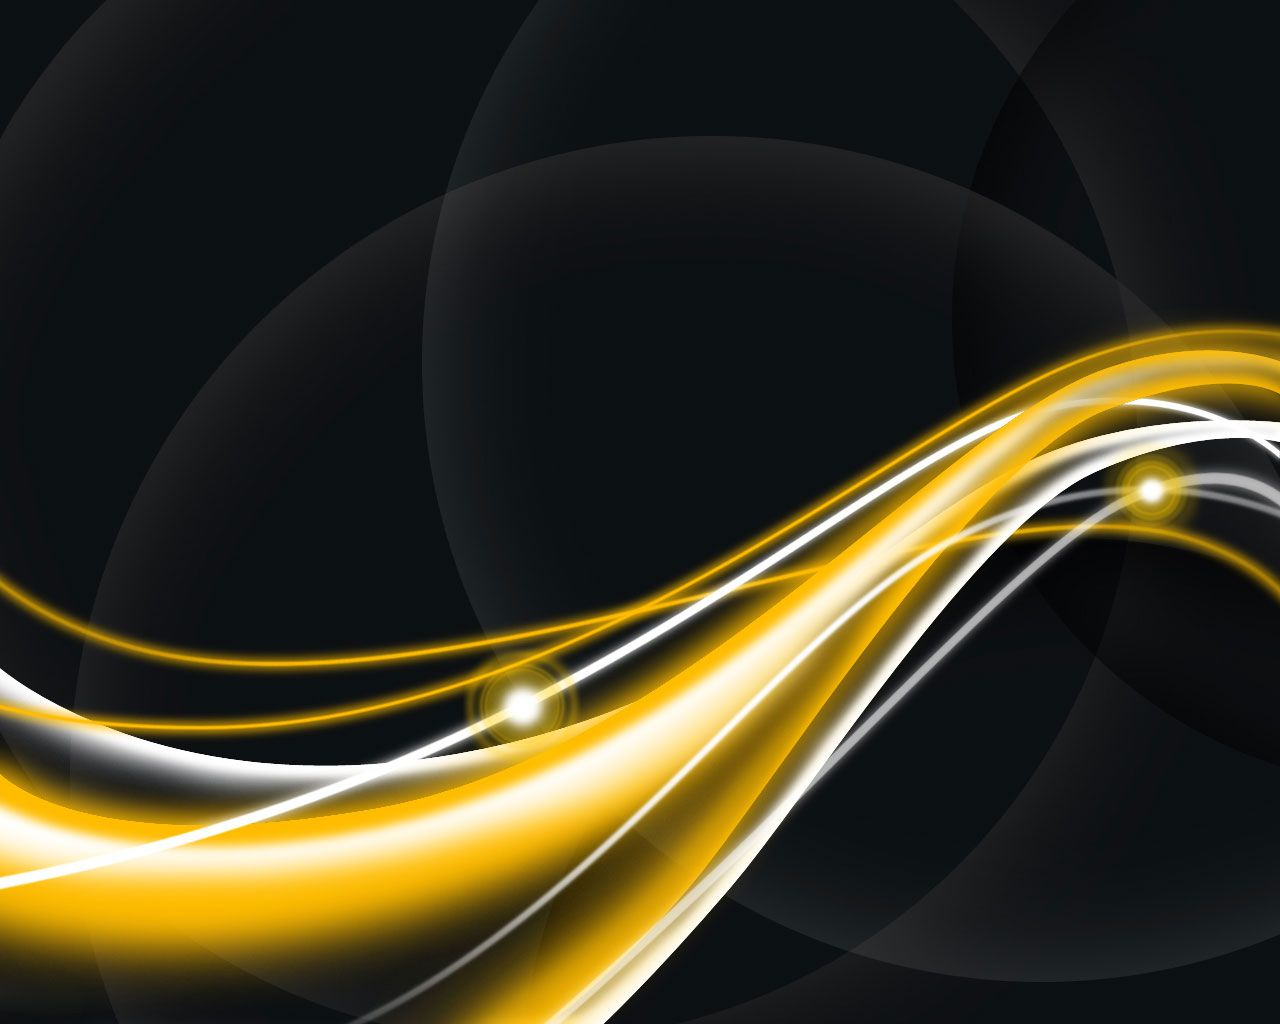 Black And Yellow Abstract Wallpapers Top Free Black And Yellow